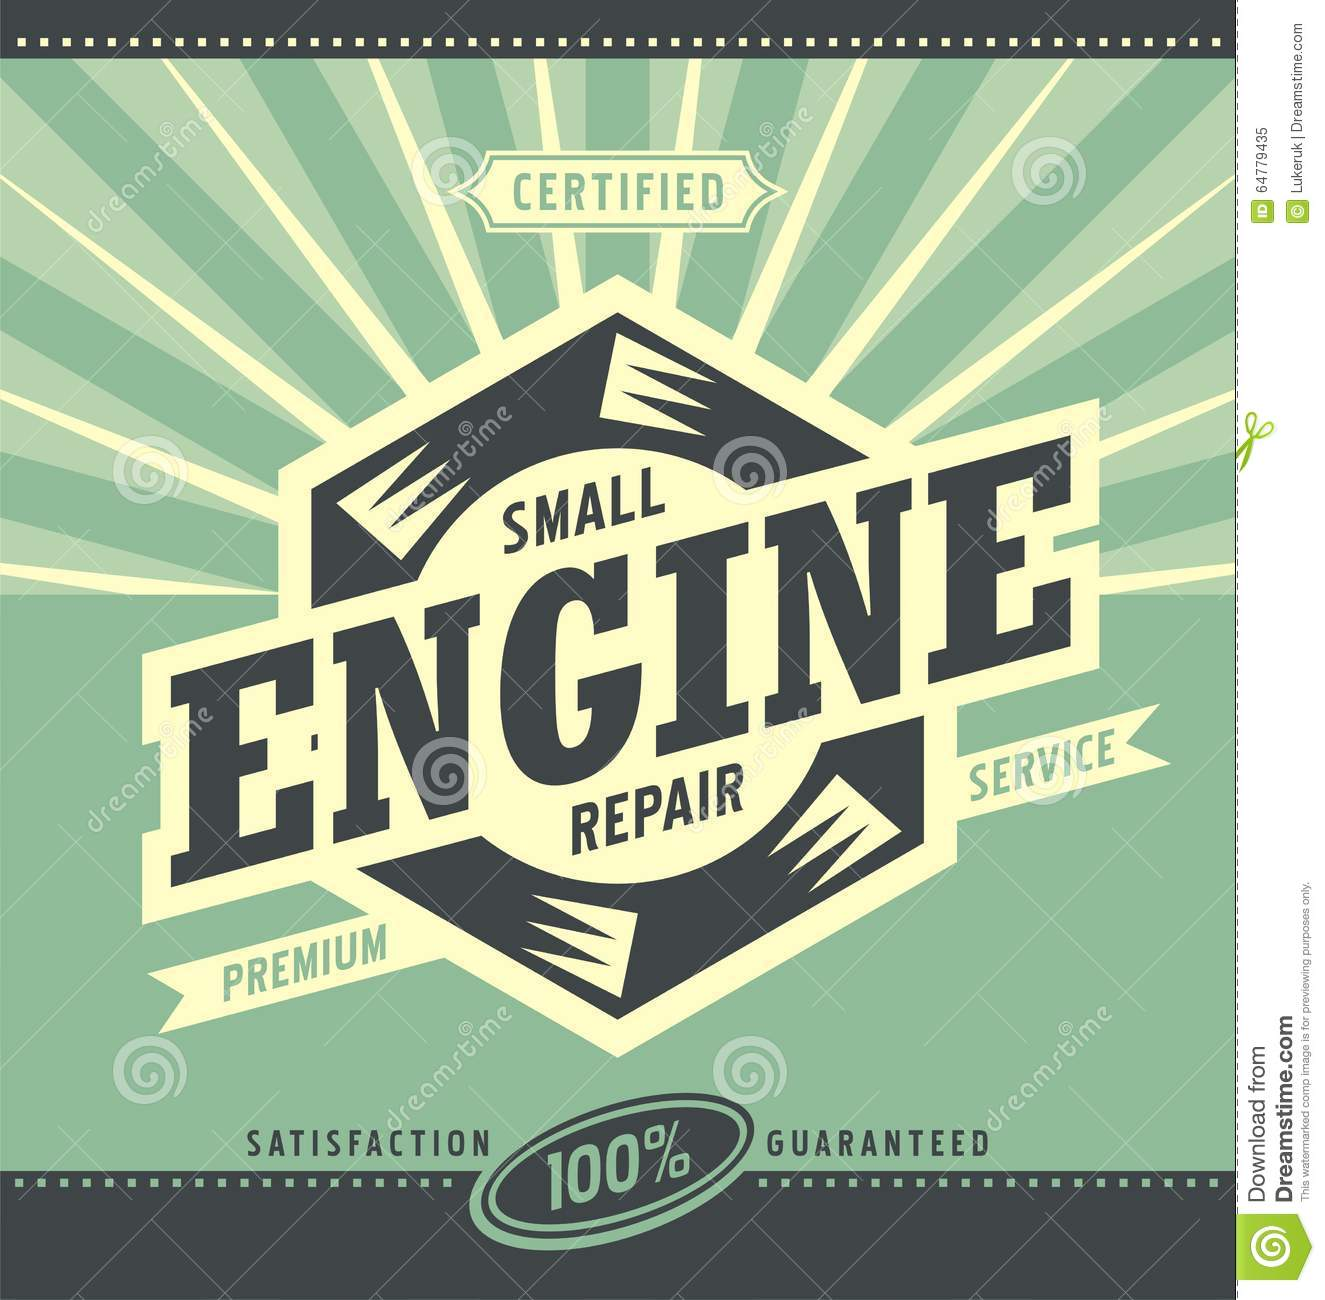 small engine repair retro ad design stock vector image lawn service logo templates lawn service logo pictures